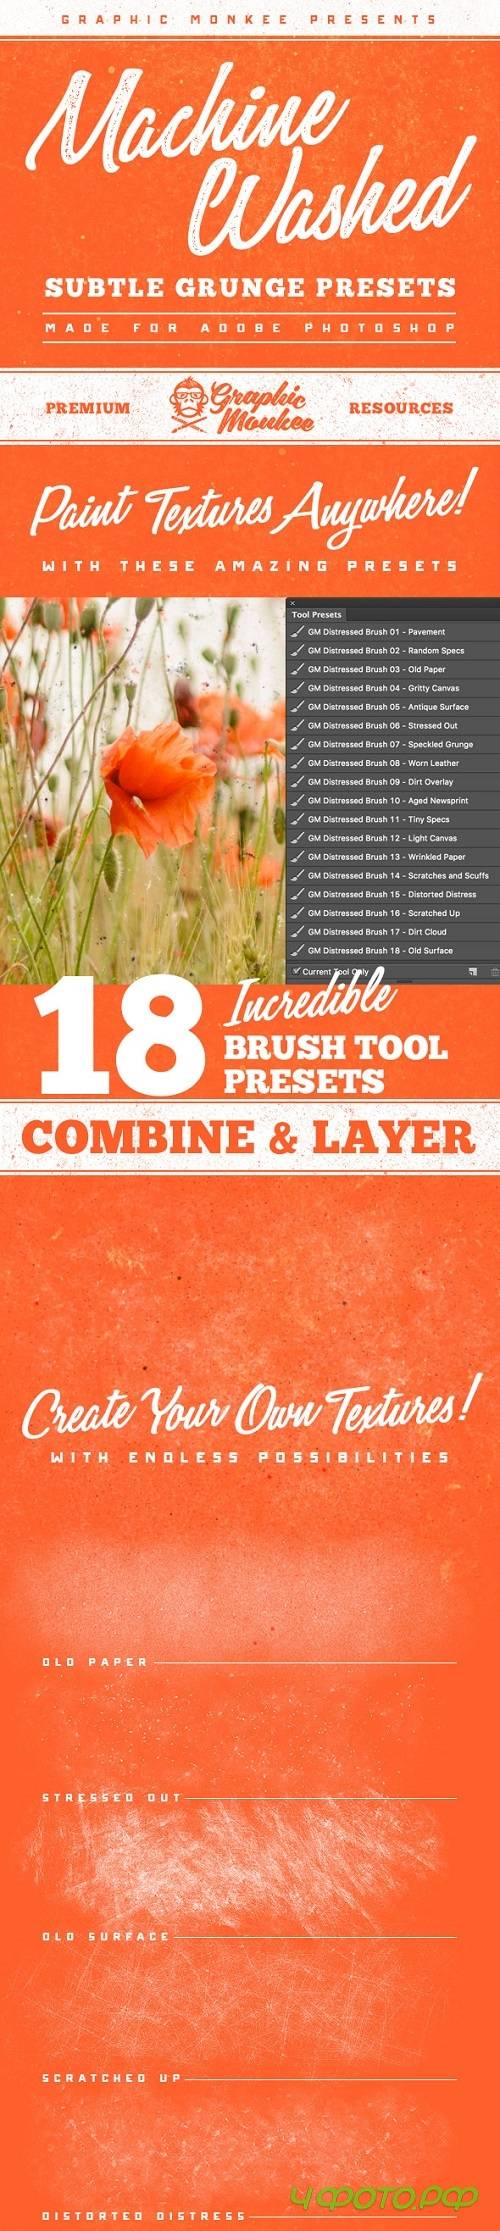 Machine Washed Brush Presets 18445007